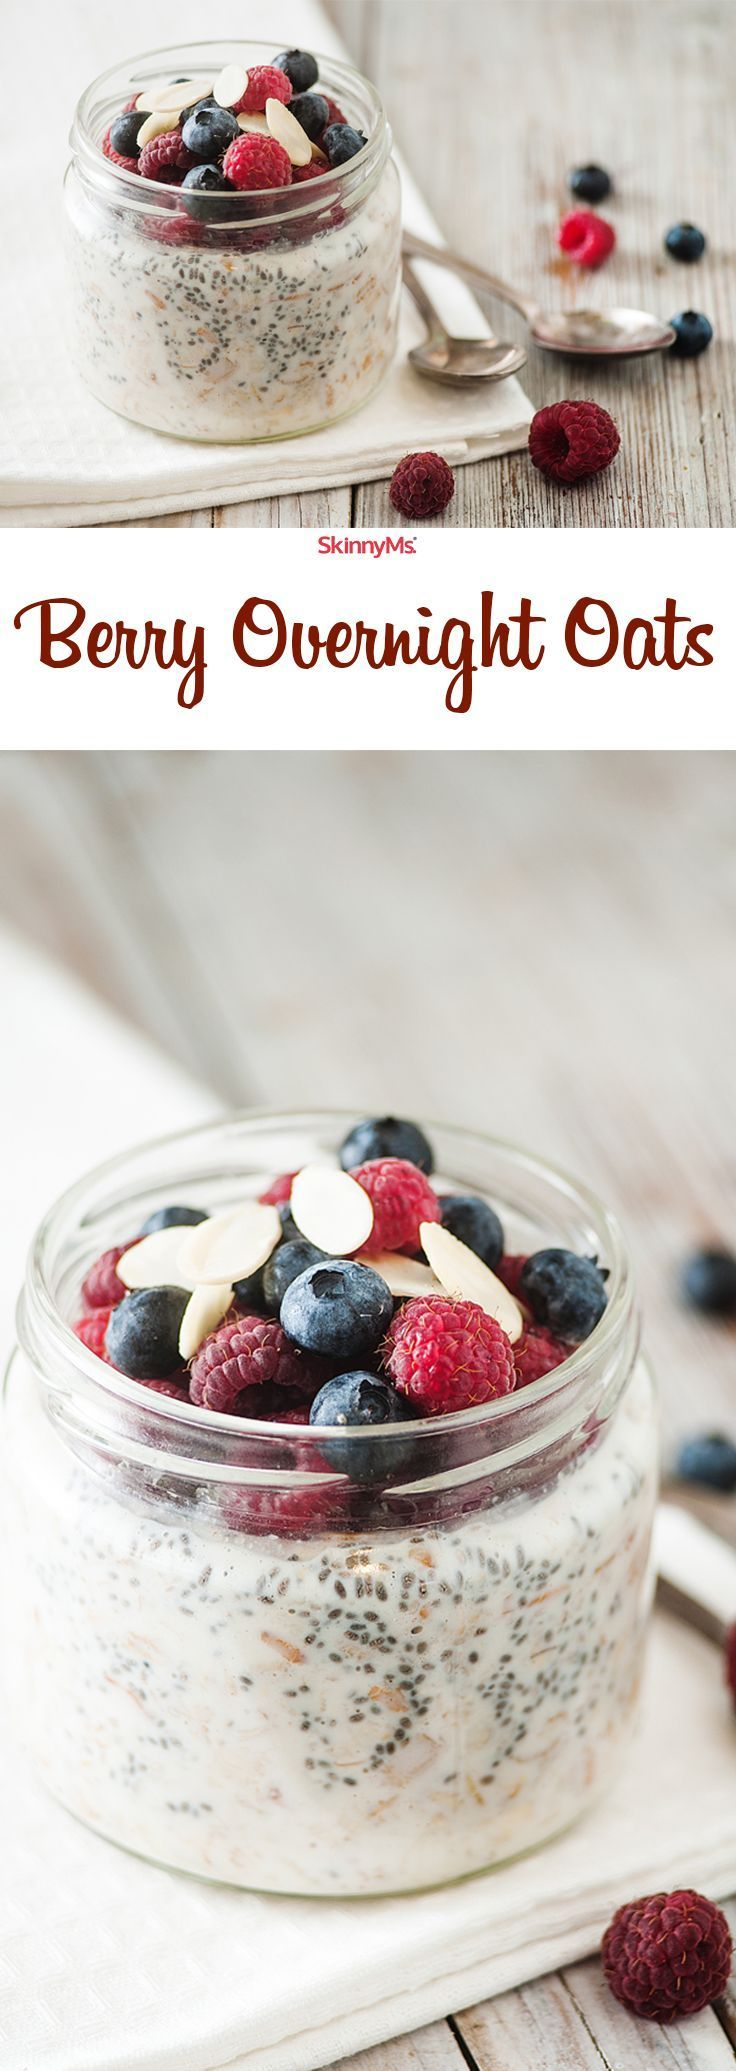 Berry Overnight Oats! My new fav breakfast obsession. :)